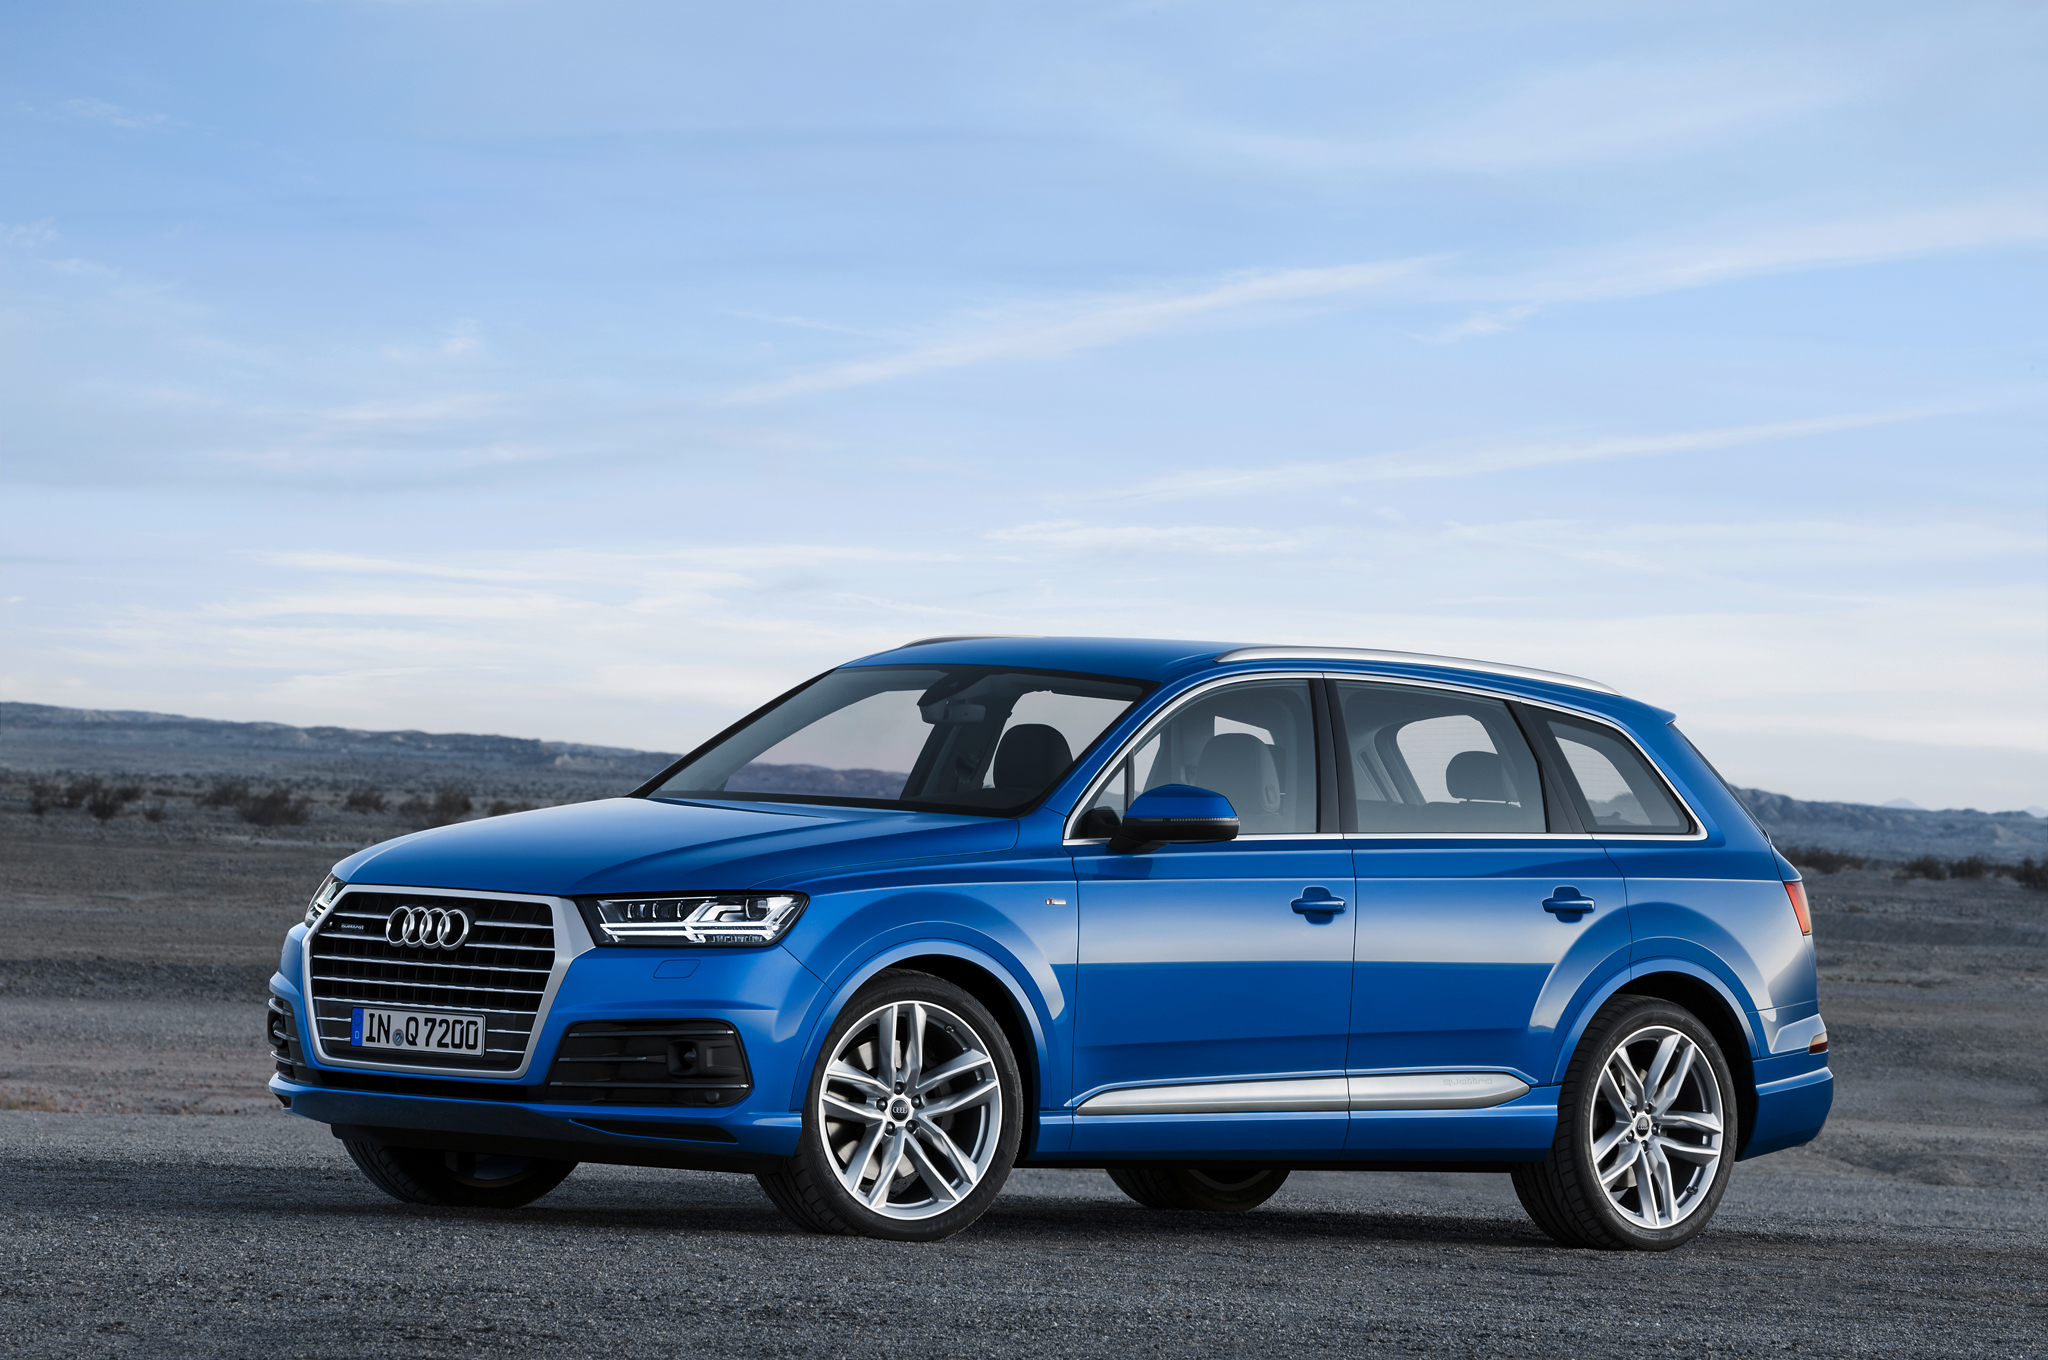 2016 Audi Q7 Front Side View